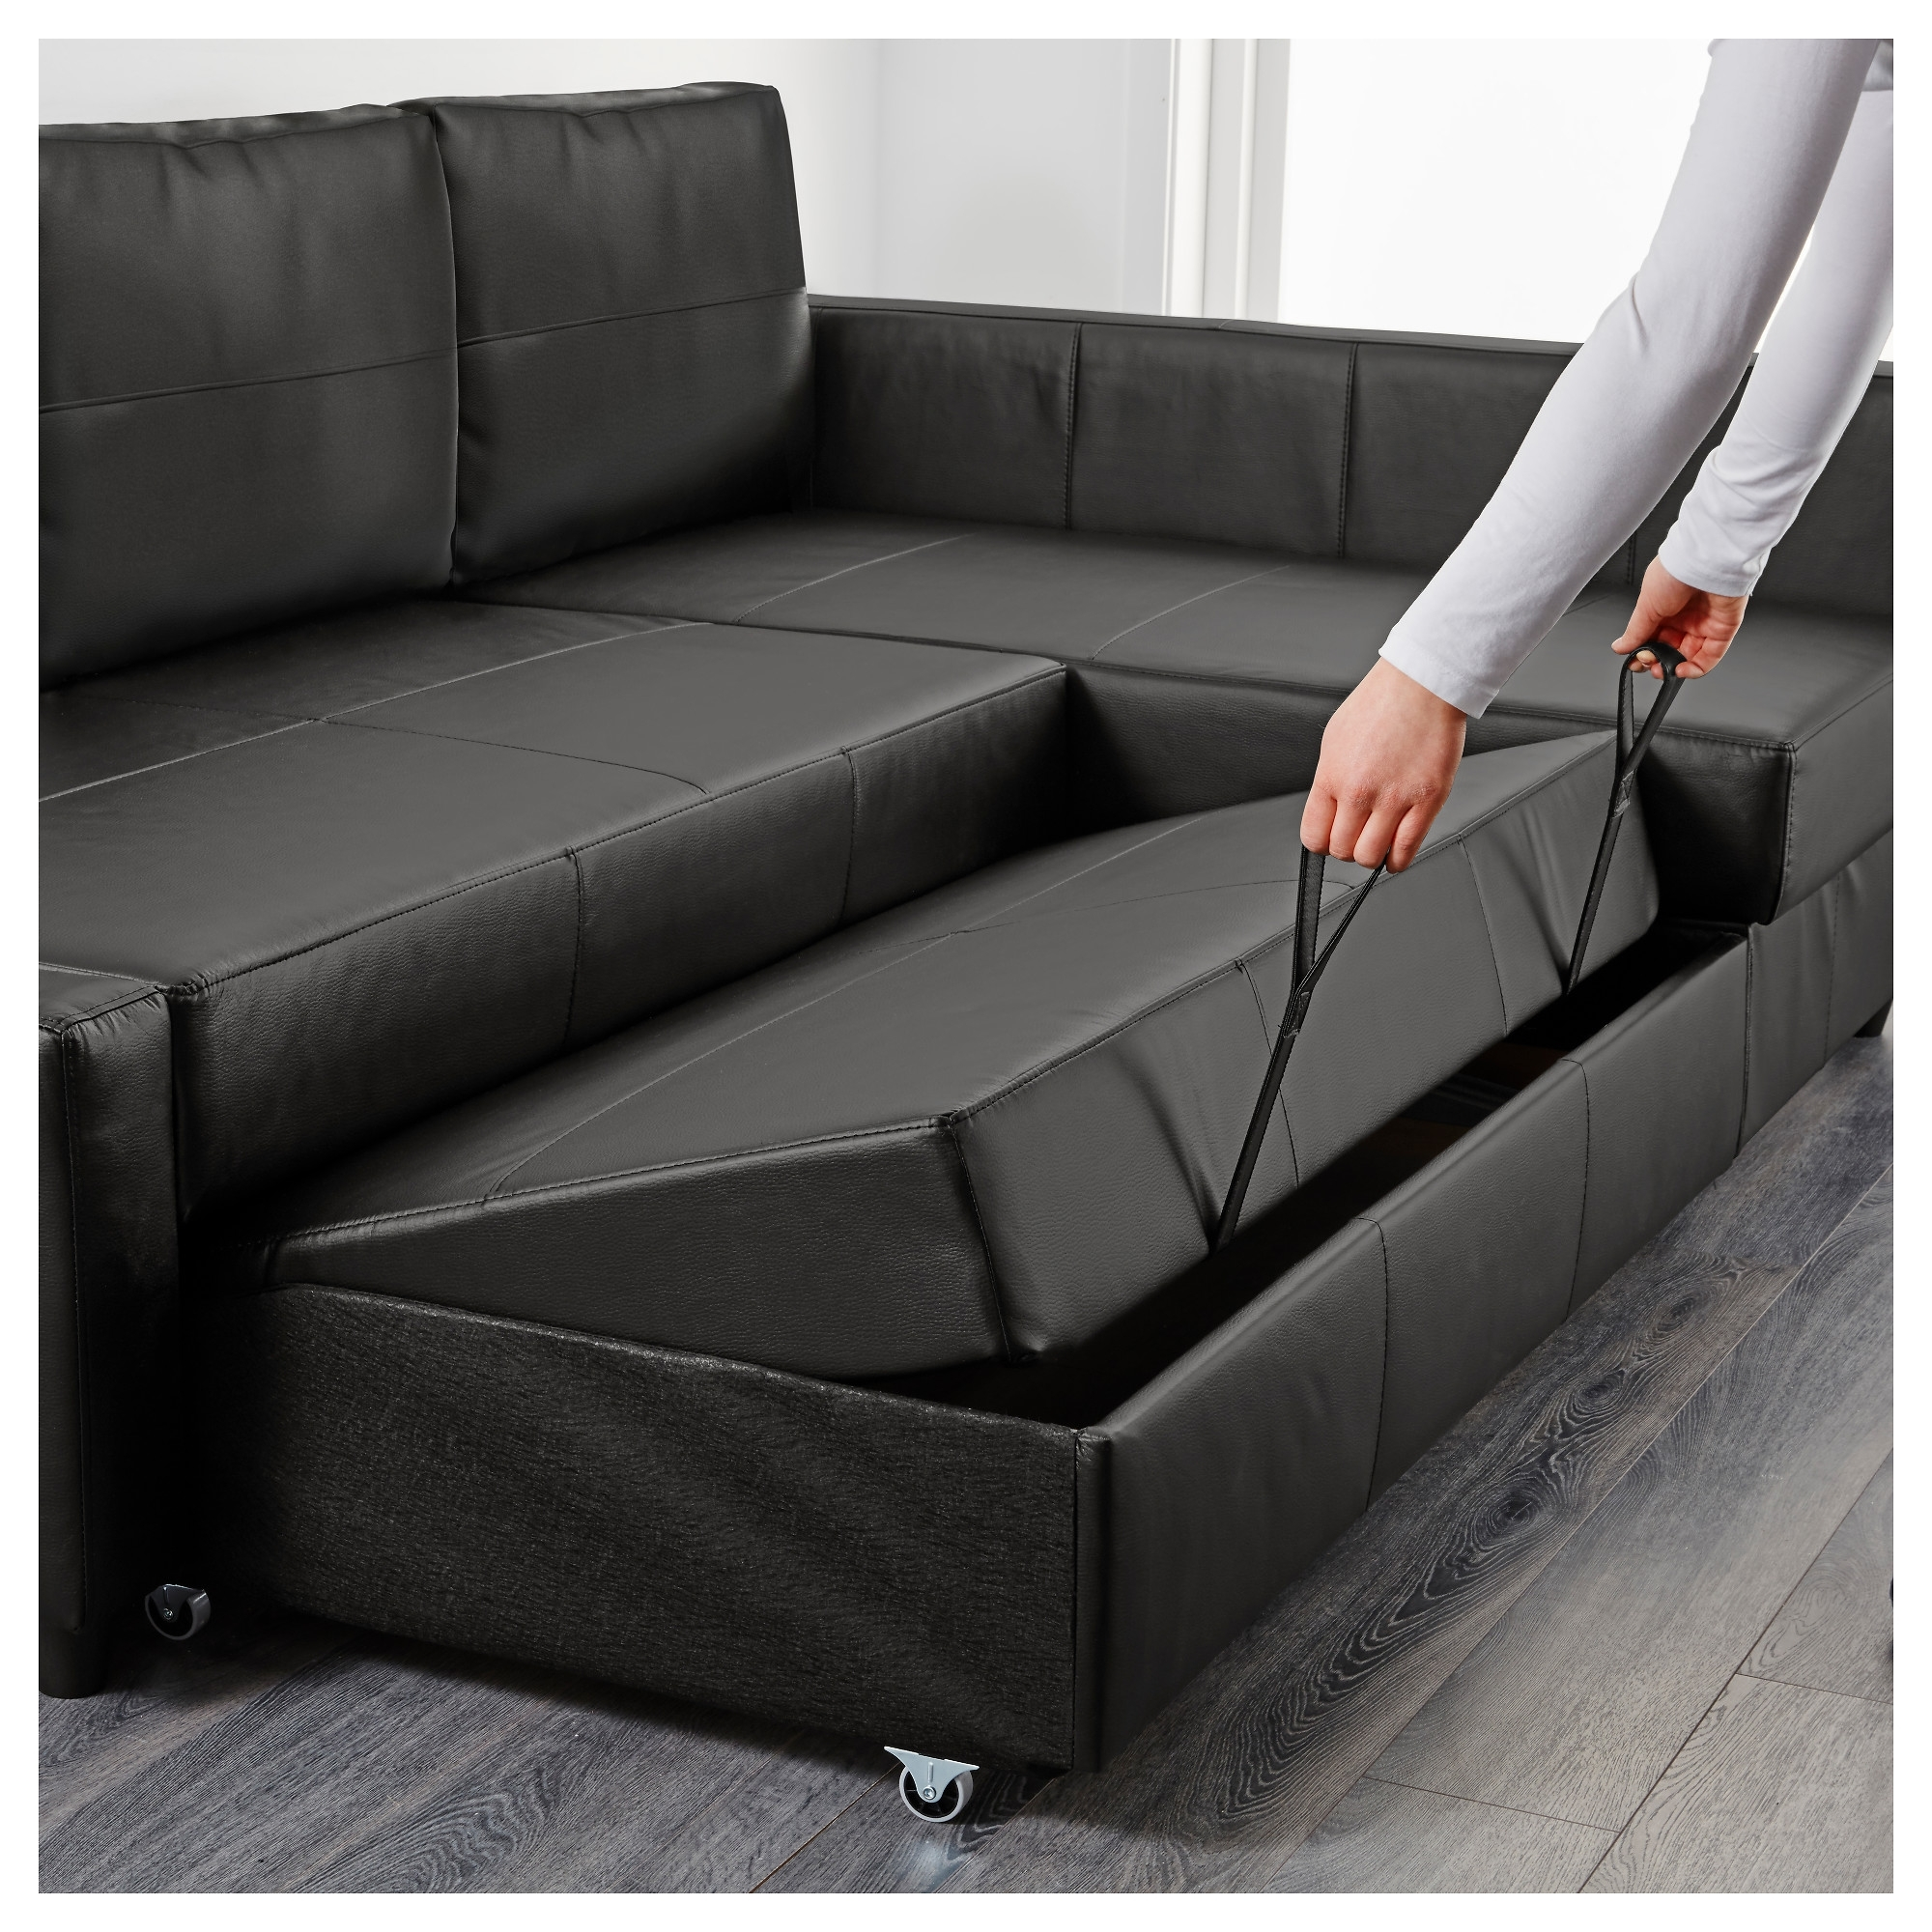 Leather Chaise Lounge Sofa Beds Regarding Fashionable Friheten Sleeper Sectional,3 Seat W/storage – Skiftebo Dark Gray (View 8 of 15)